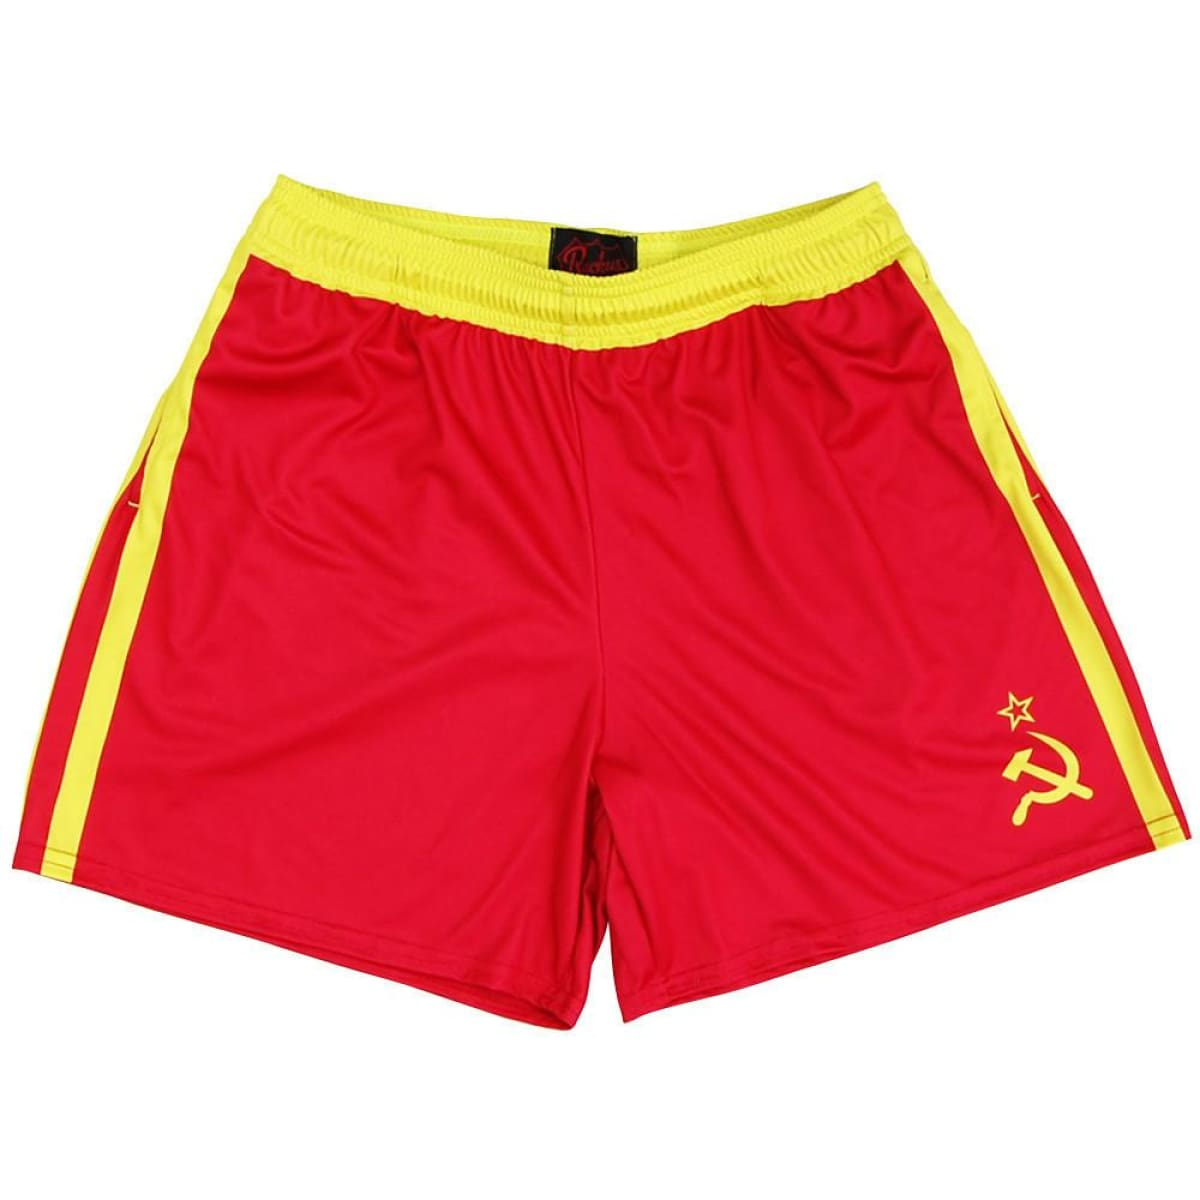 Drago Rocky Rugby Shorts - Red and Yellow / Adult Small - Rugby Cut Training Shorts